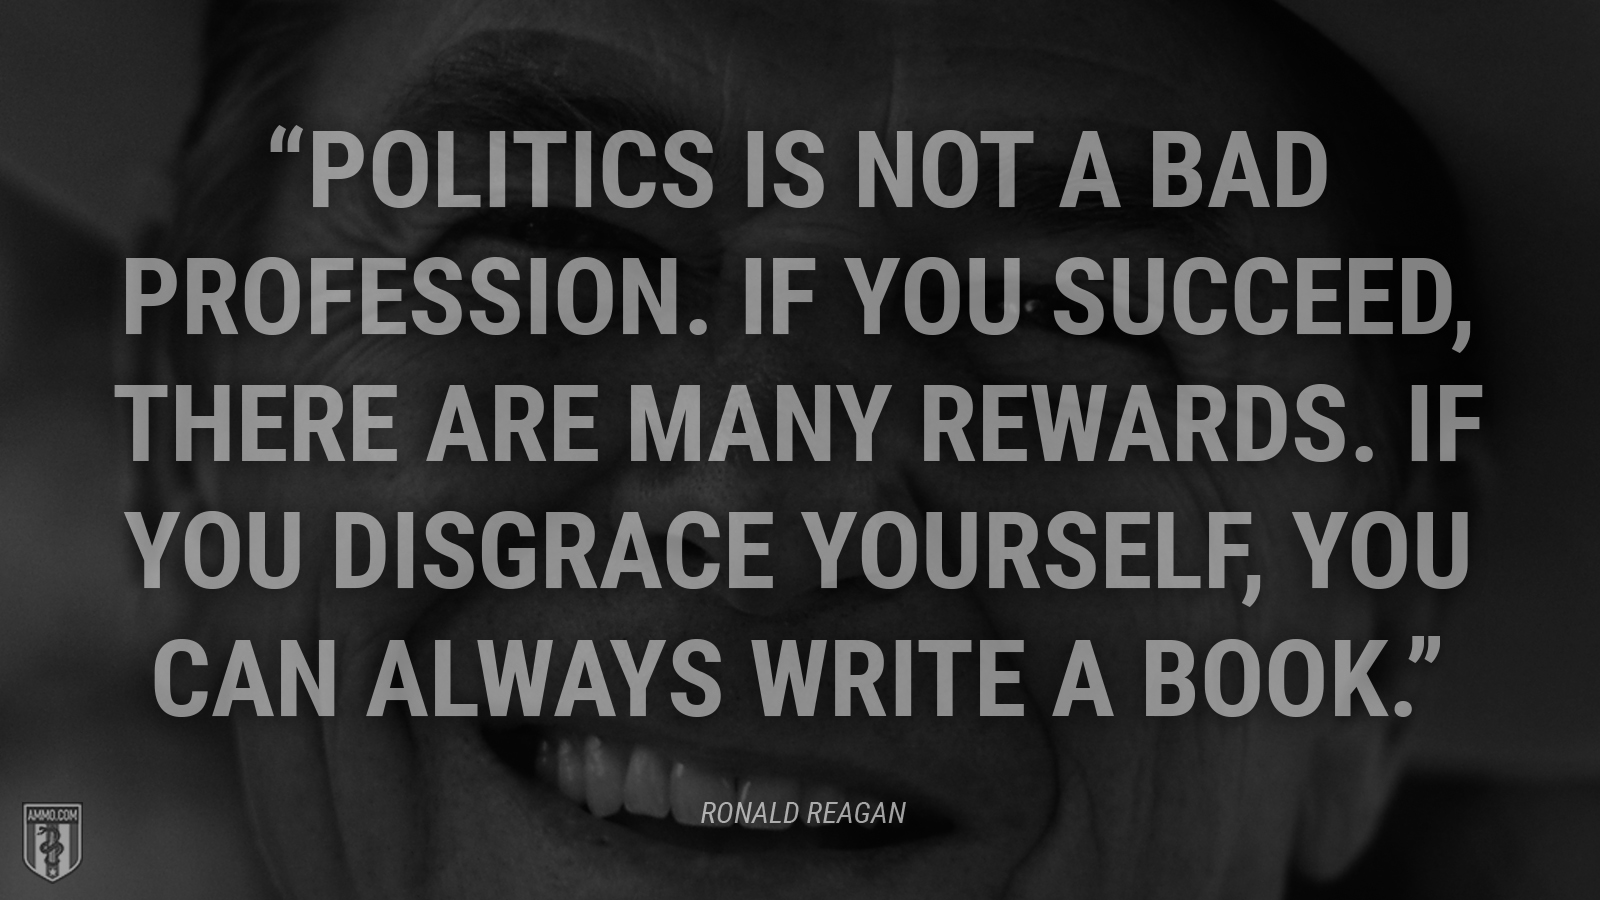 """Politics is not a bad profession. If you succeed, there are many rewards. If you disgrace yourself, you can always write a book."" - Ronald Reagan"